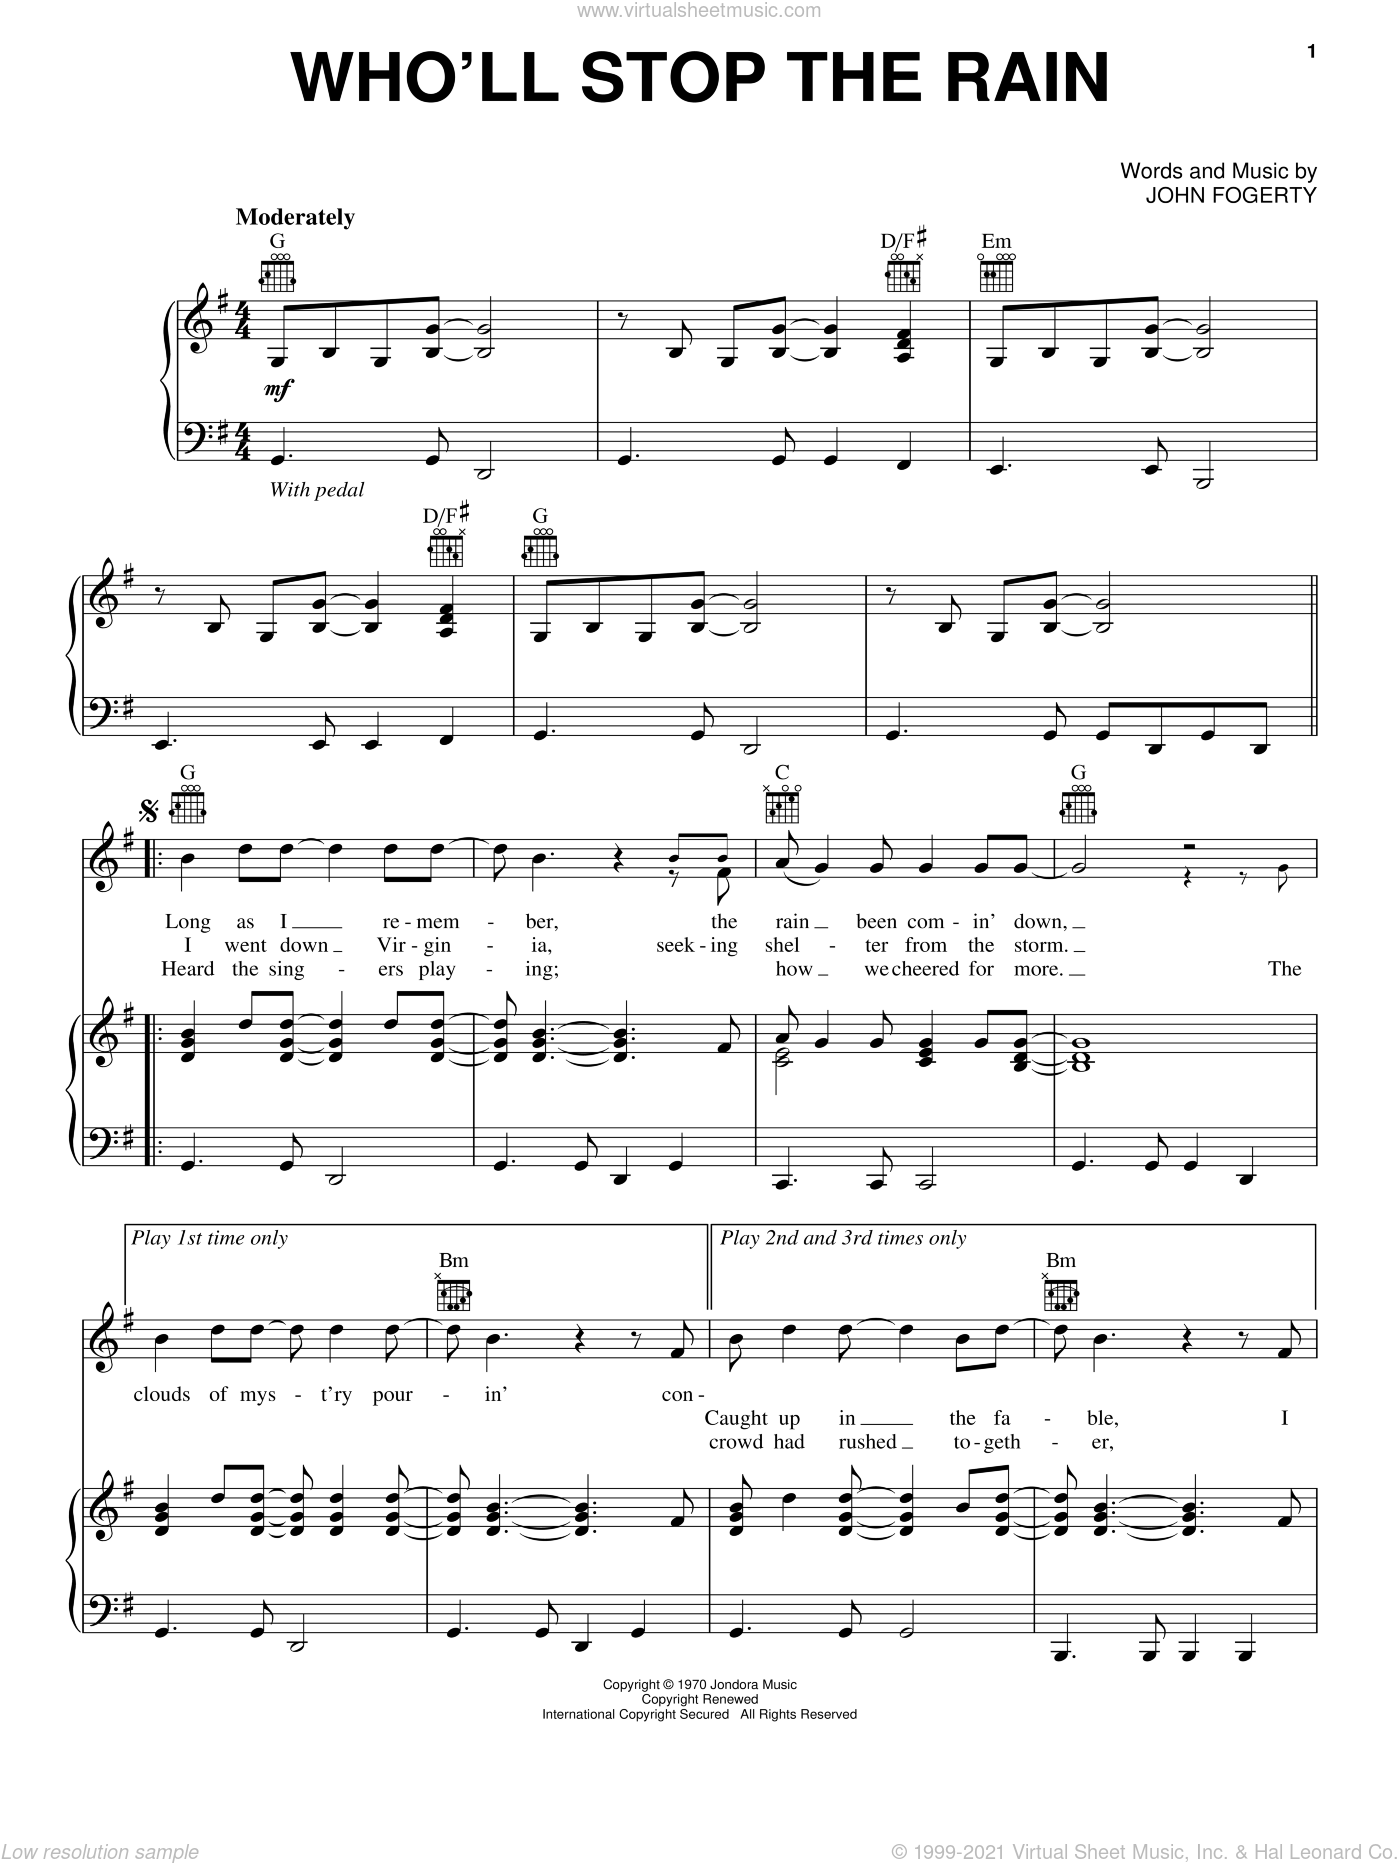 Who'll Stop The Rain sheet music for voice, piano or guitar by John Fogerty and Creedence Clearwater Revival. Score Image Preview.